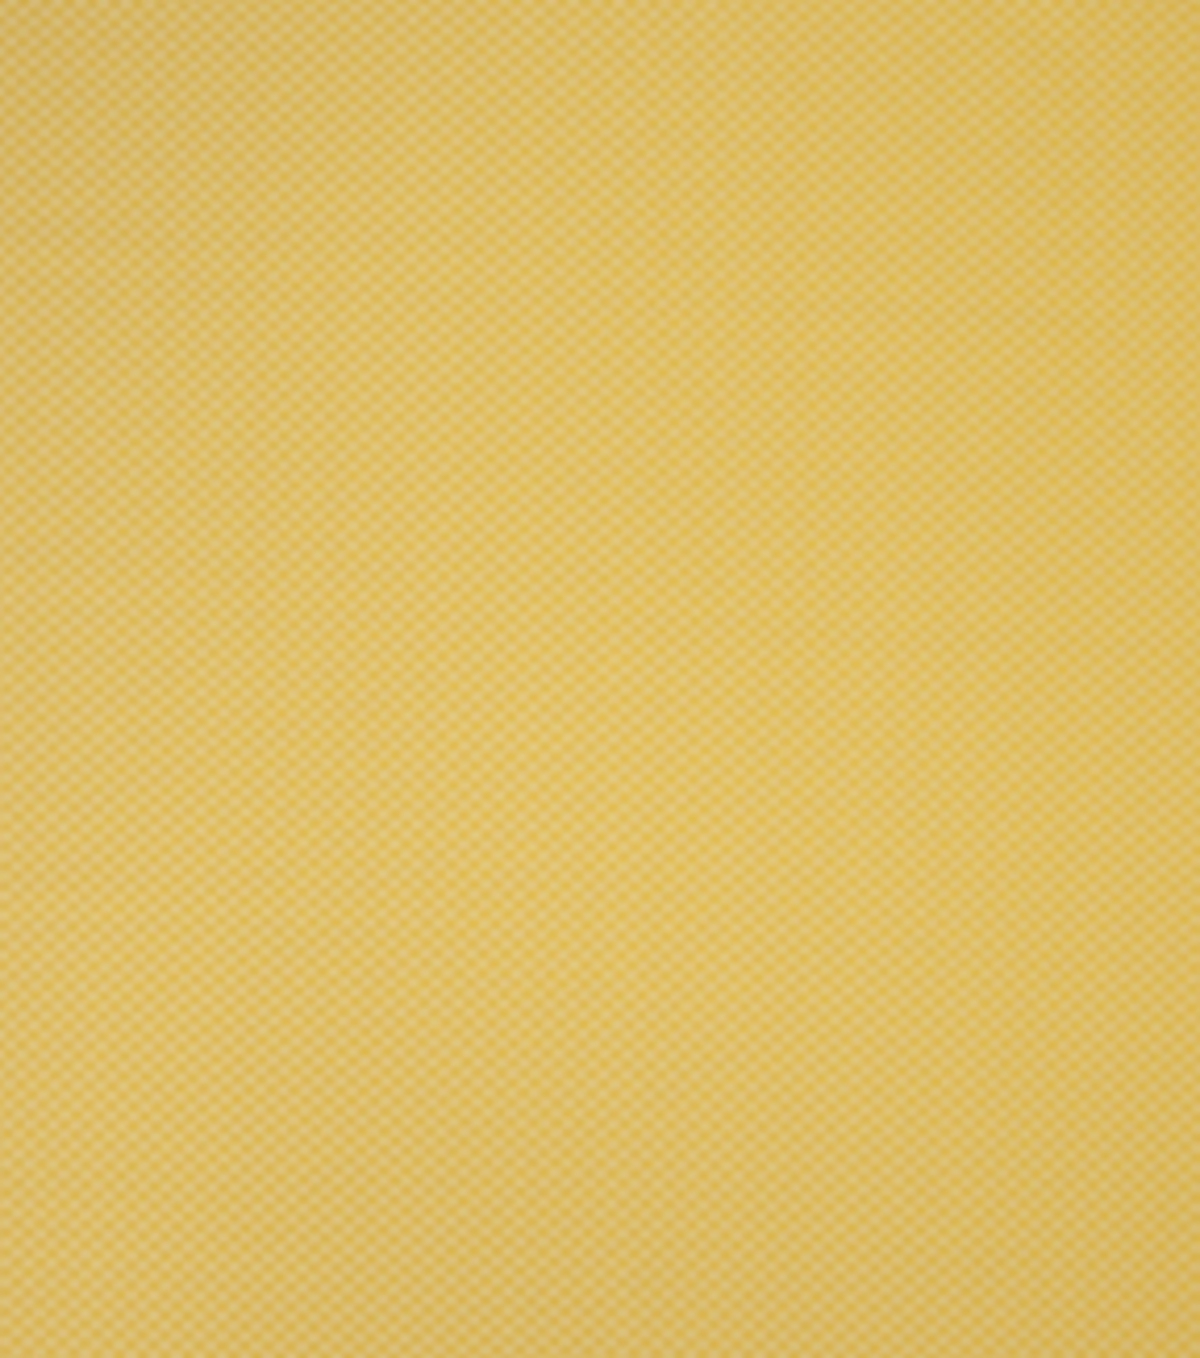 Home Decor 8\u0022x8\u0022 Fabric Swatch-Bella Dura Passenger Pineapple